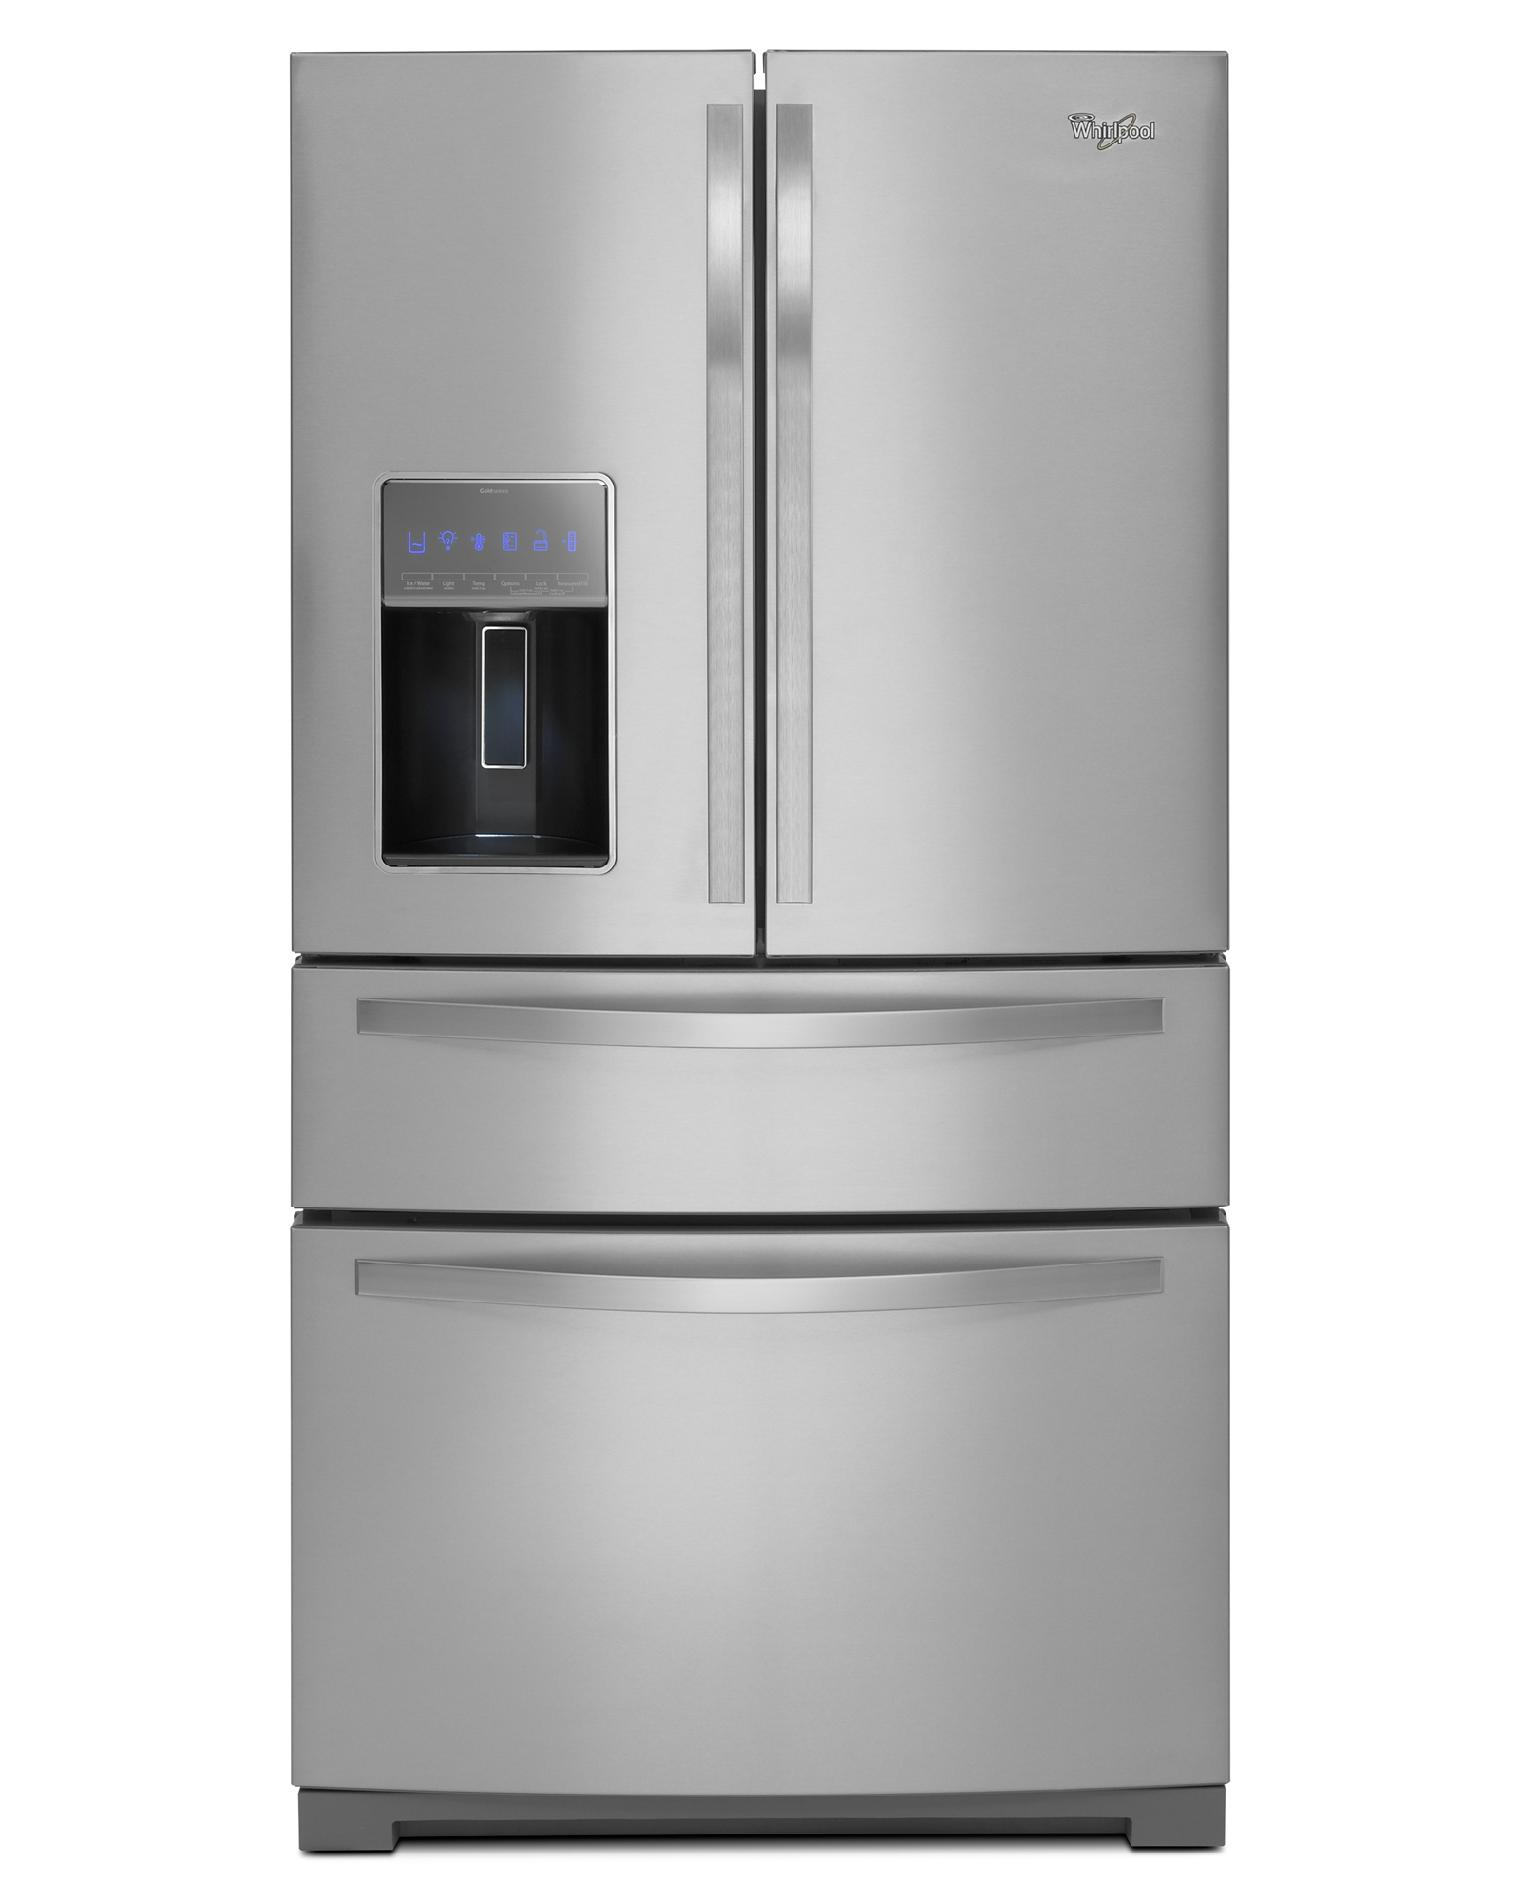 Le Meilleur Whirlpool 28 1 Cu Ft French Door Refrigerator W Most Ce Mois Ci